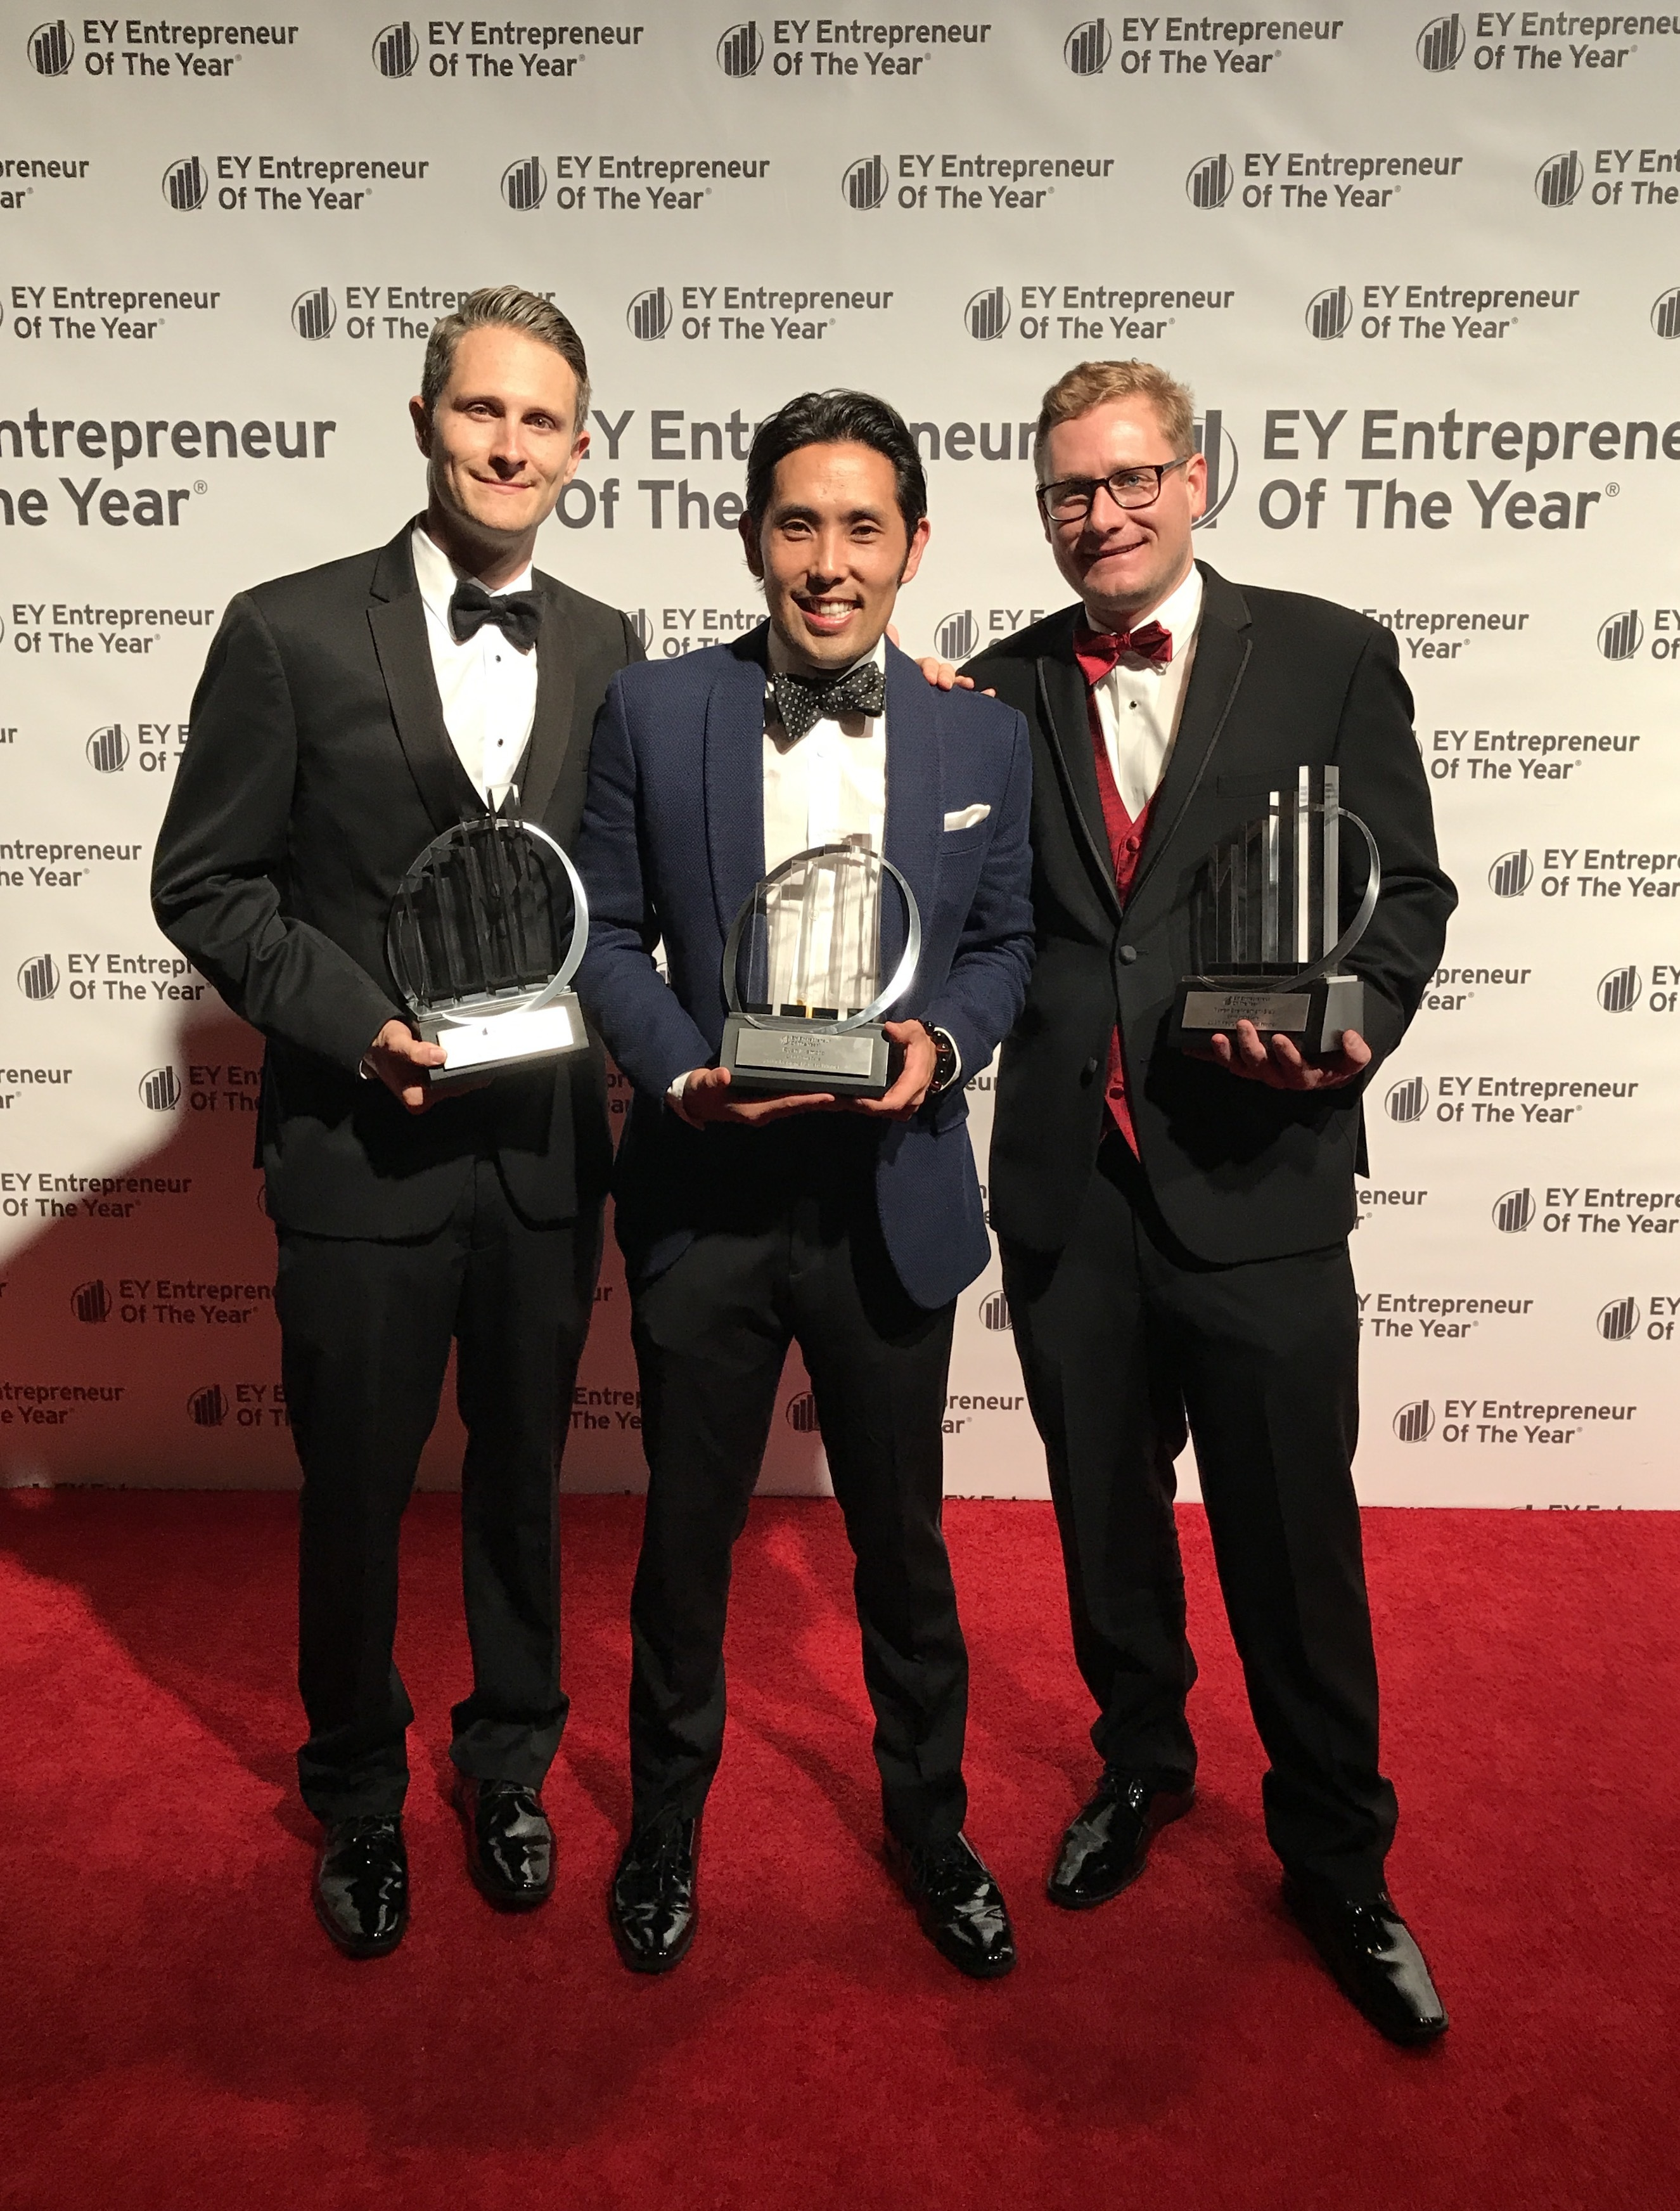 From left to right: Tyner Brenneman-Slay, Co-Founder and Chief Operating Officer, Ryan Iwamoto, Co-Founder and Chief Marketing Officer, and David Allerby, Co-Founder and Chief Executive Officer, accept their awards at the Greater Los Angeles Awards Gala at The Beverly Hilton. (Photo: Business Wire)